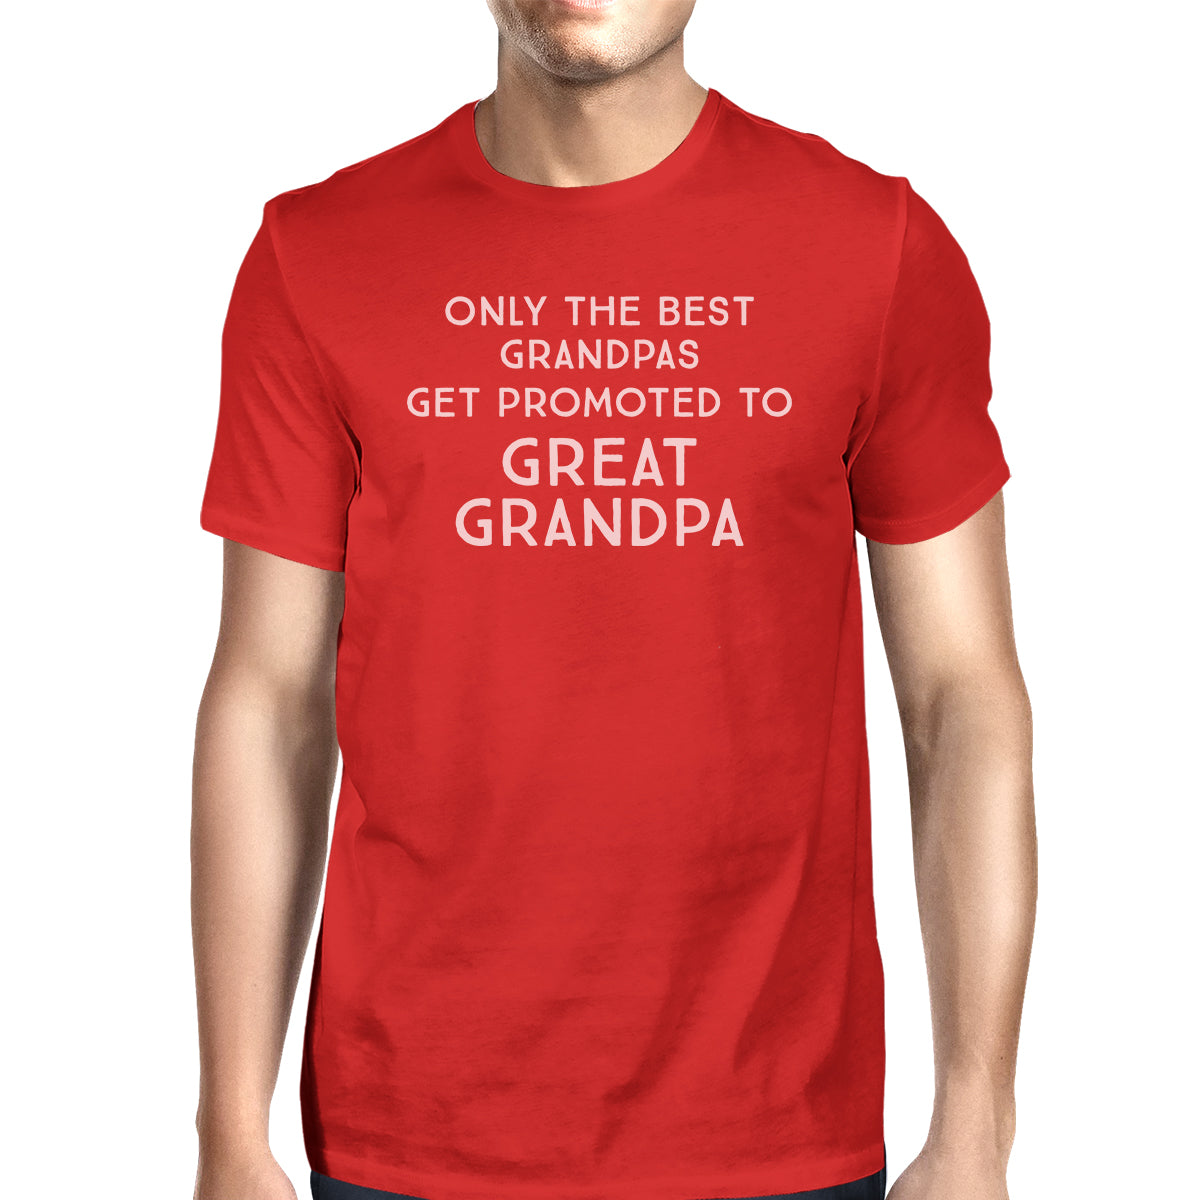 f311c9f03ee49 Only The Best Grandpas Get Promoted To Great Grandpa Mens Red Shirt ...